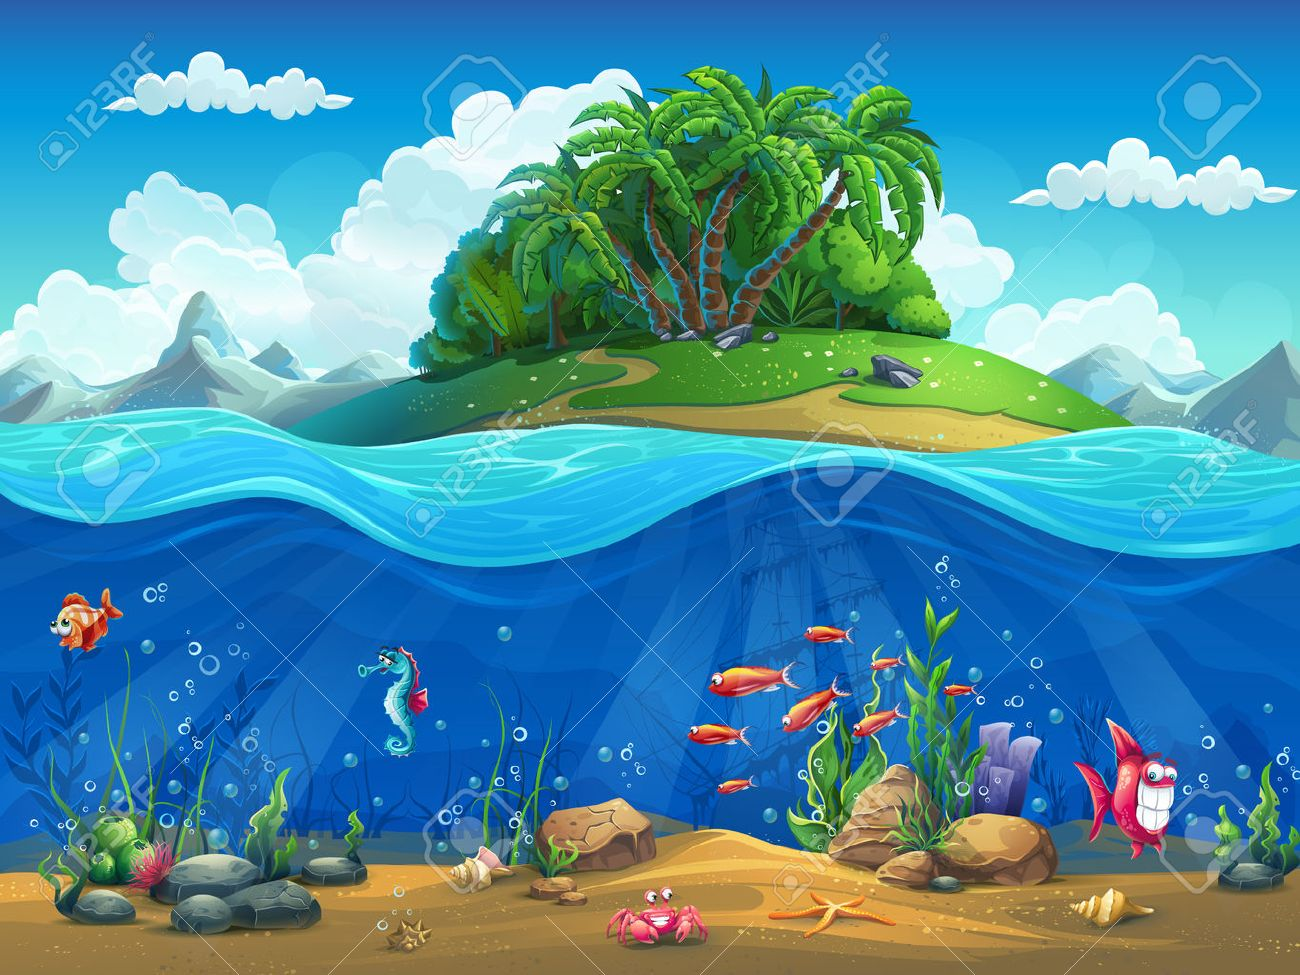 Fish tank drawing pictures - Aquarium Drawing Cartoon Underwater World With Fish Plants Island